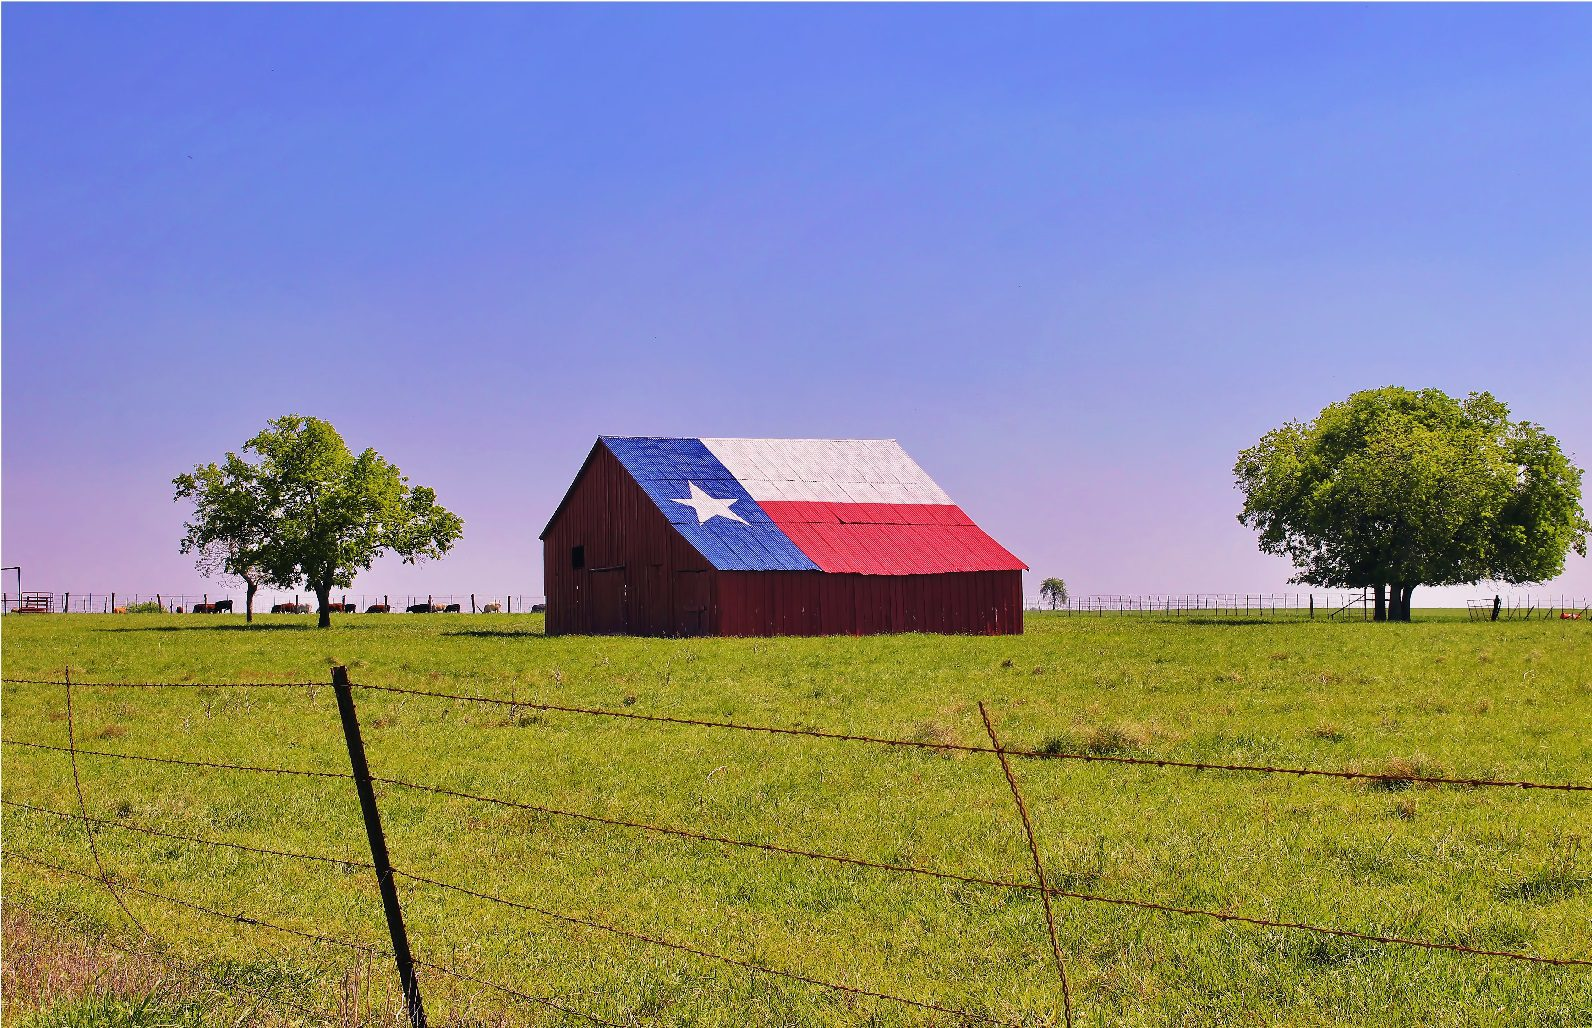 A barn on a Texas ranch with the state flag painted on the roof